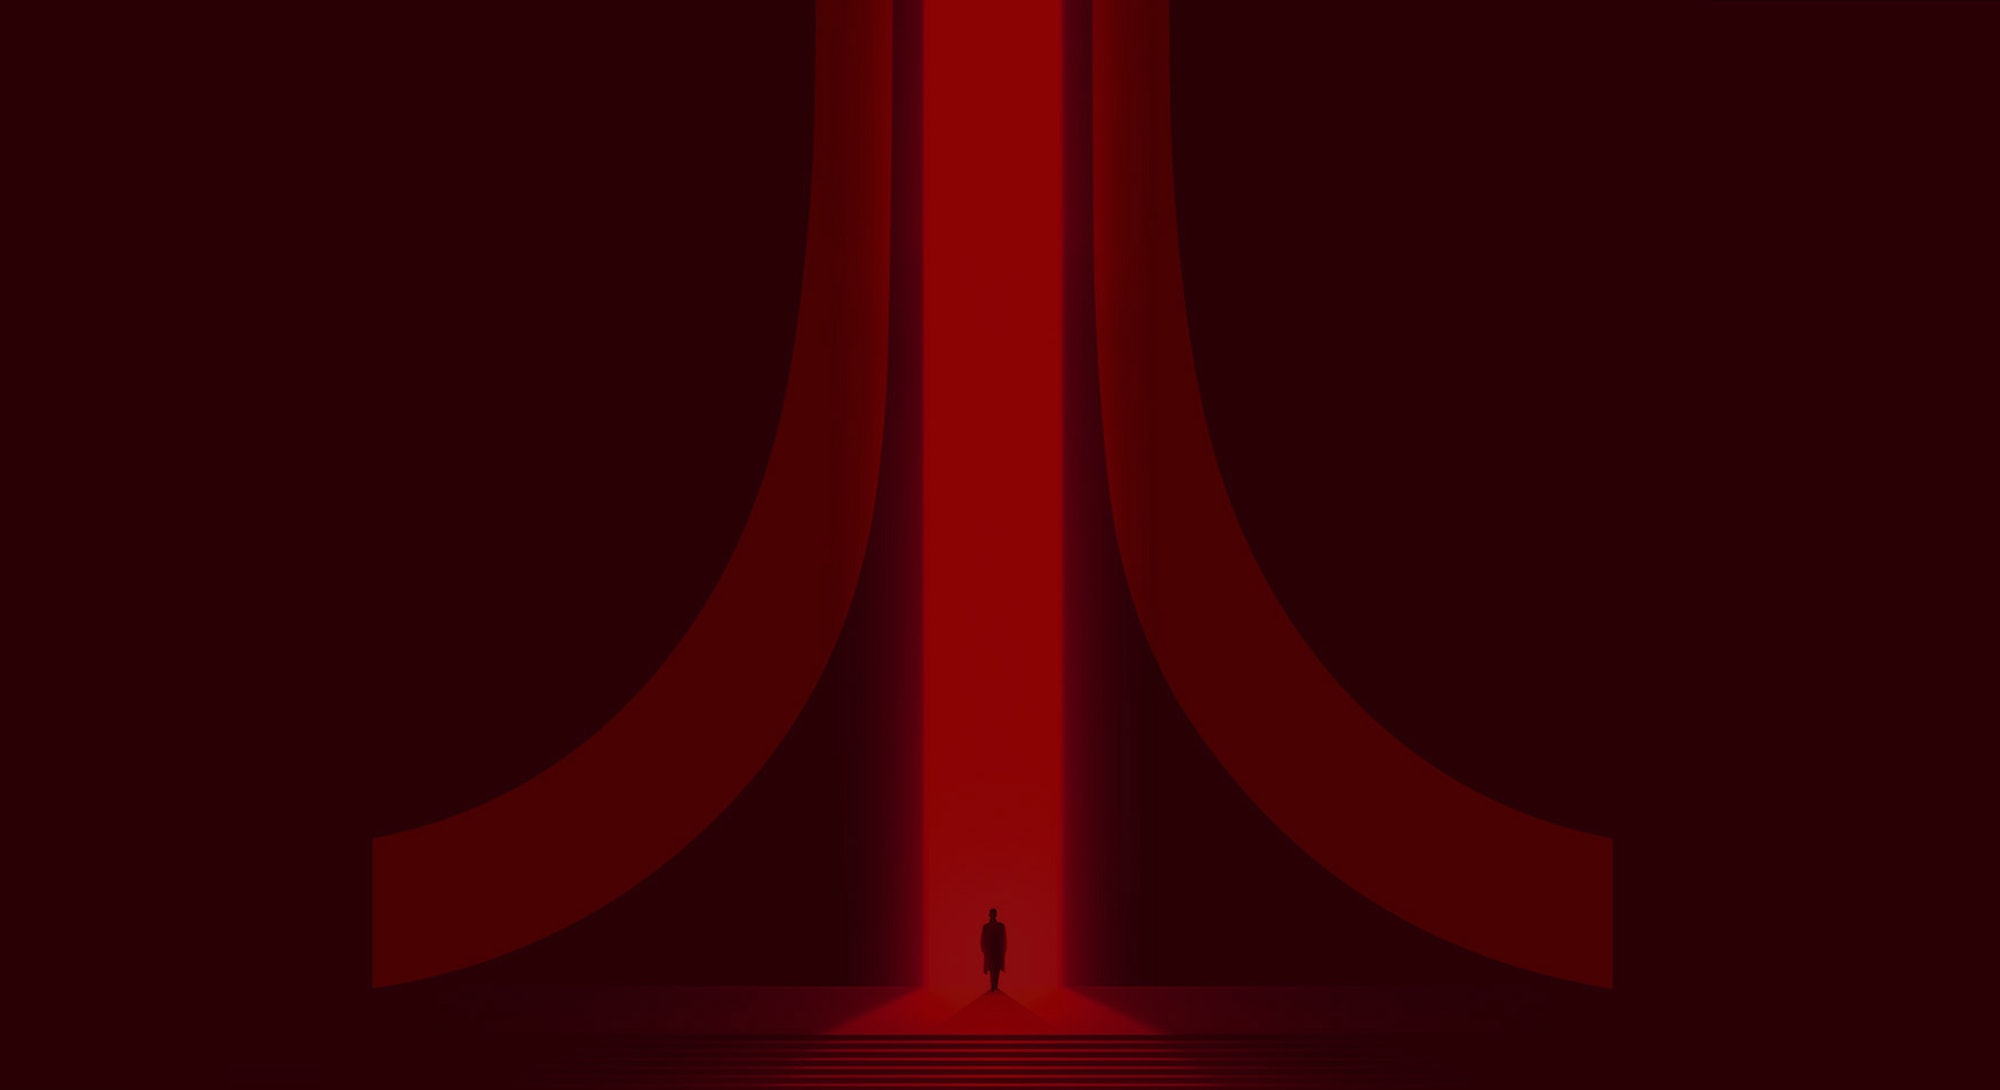 A person is walking into a deep red and black Atari logo symbol.